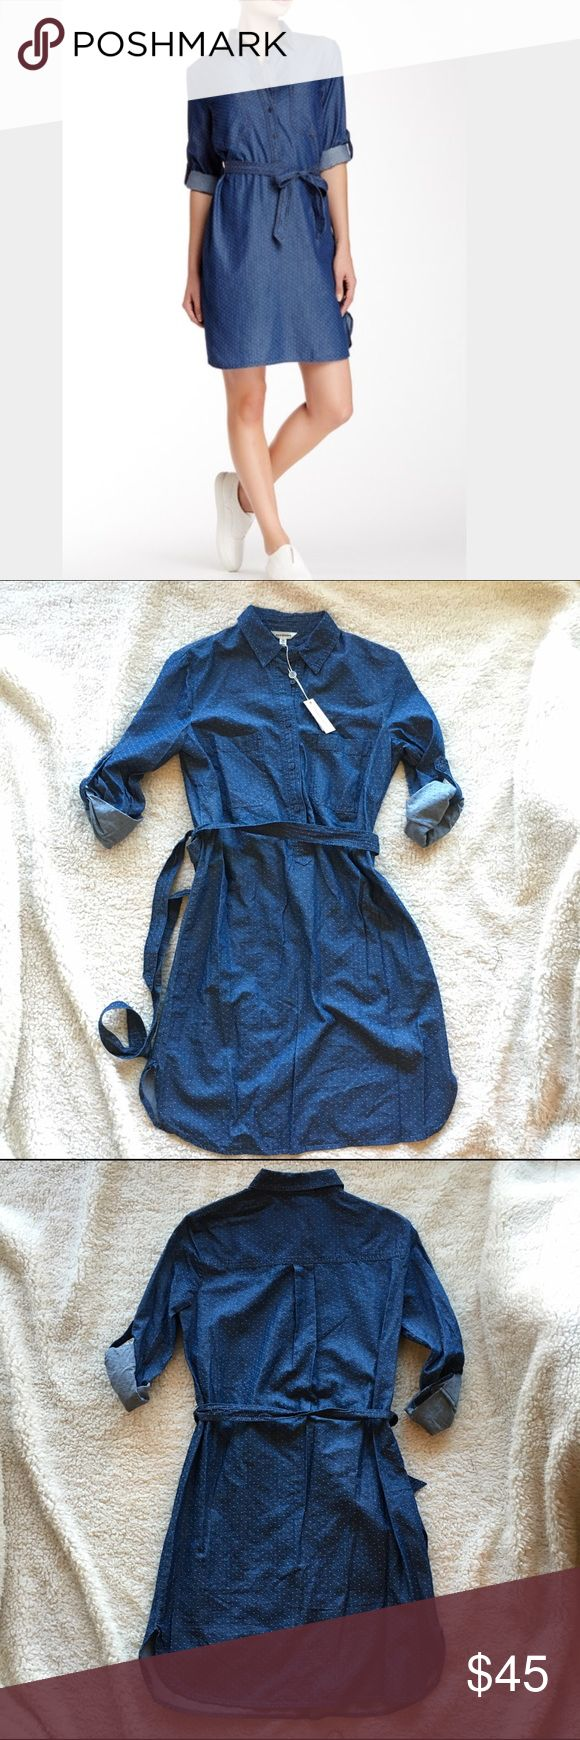 NWT: Max Studio Pindot Denim Shirt Dress, sz XS NWT: Max Studio roll sleeve pin dot denim shirt dress with waist tie from a smoke-free, pet-free home. Size: XS Max Studio Dresses Long Sleeve